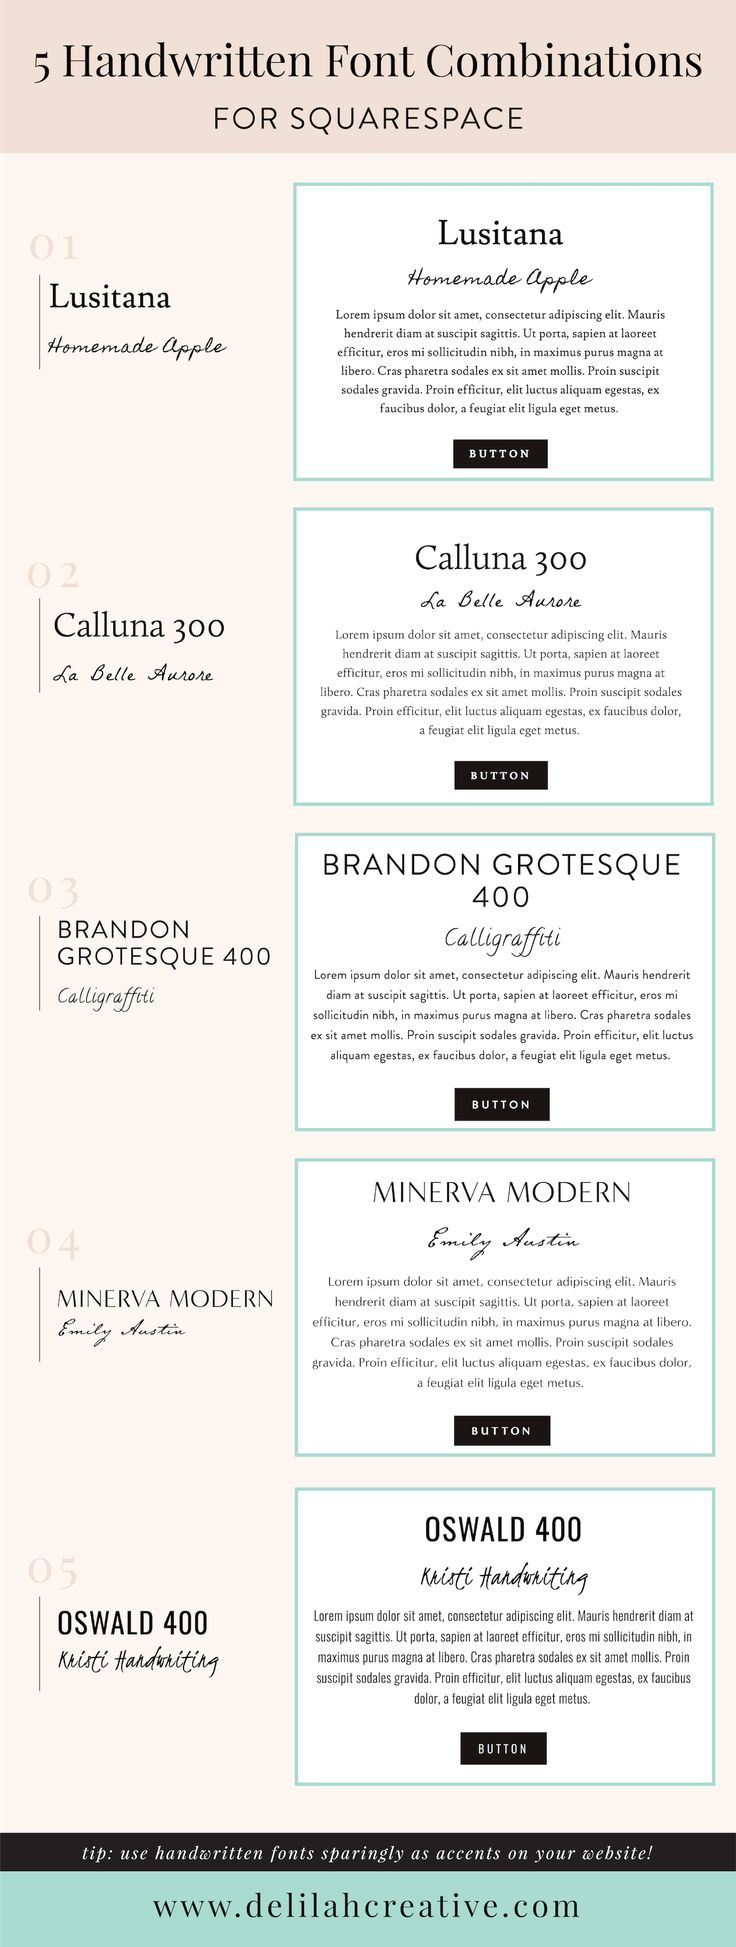 286 Best Typography Images On Pinterest Graphics And Austin Slip Minerva Pink Handwritten Font Combintations For Squarespace We Absolutely Love The Look Of Using Fonts